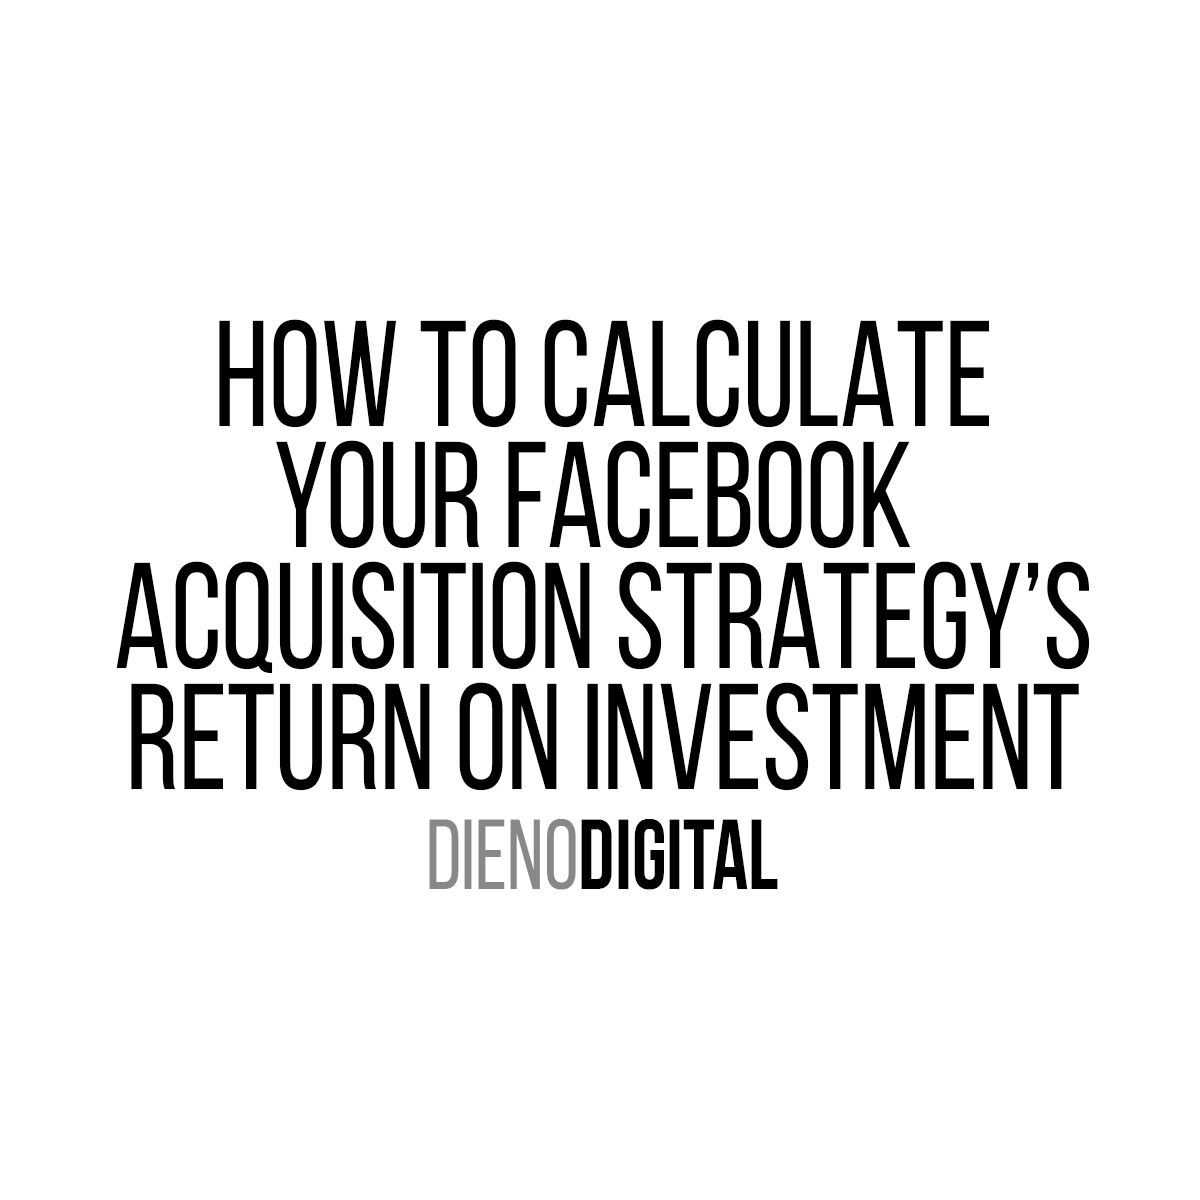 How To Calculate your Facebook Acquisition Strategy's ROI